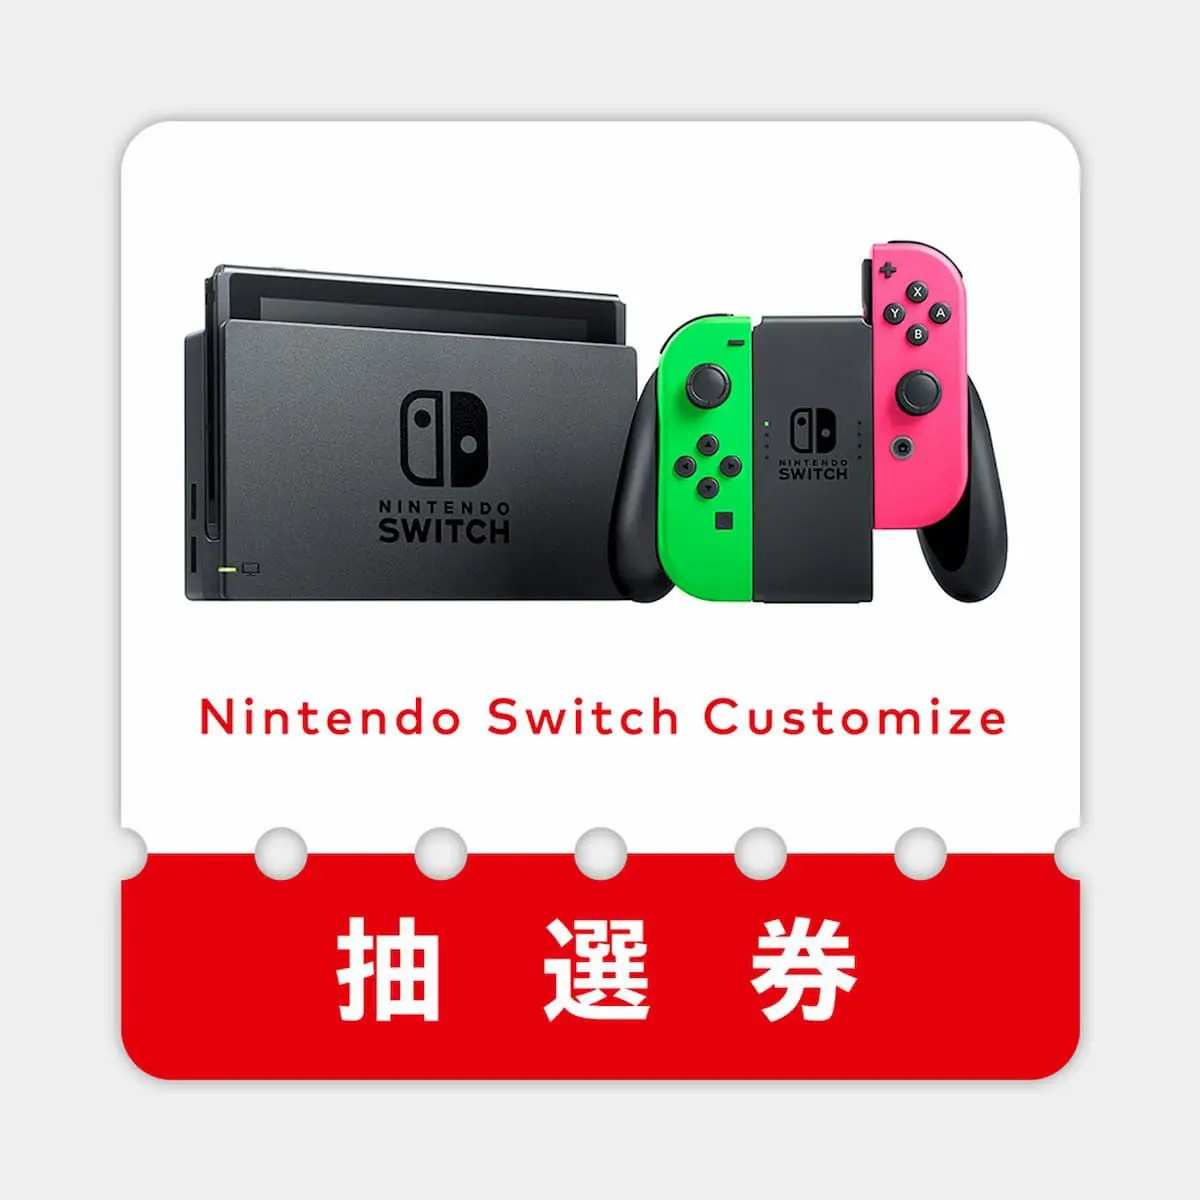 Nintendo Switch Customize抽選券